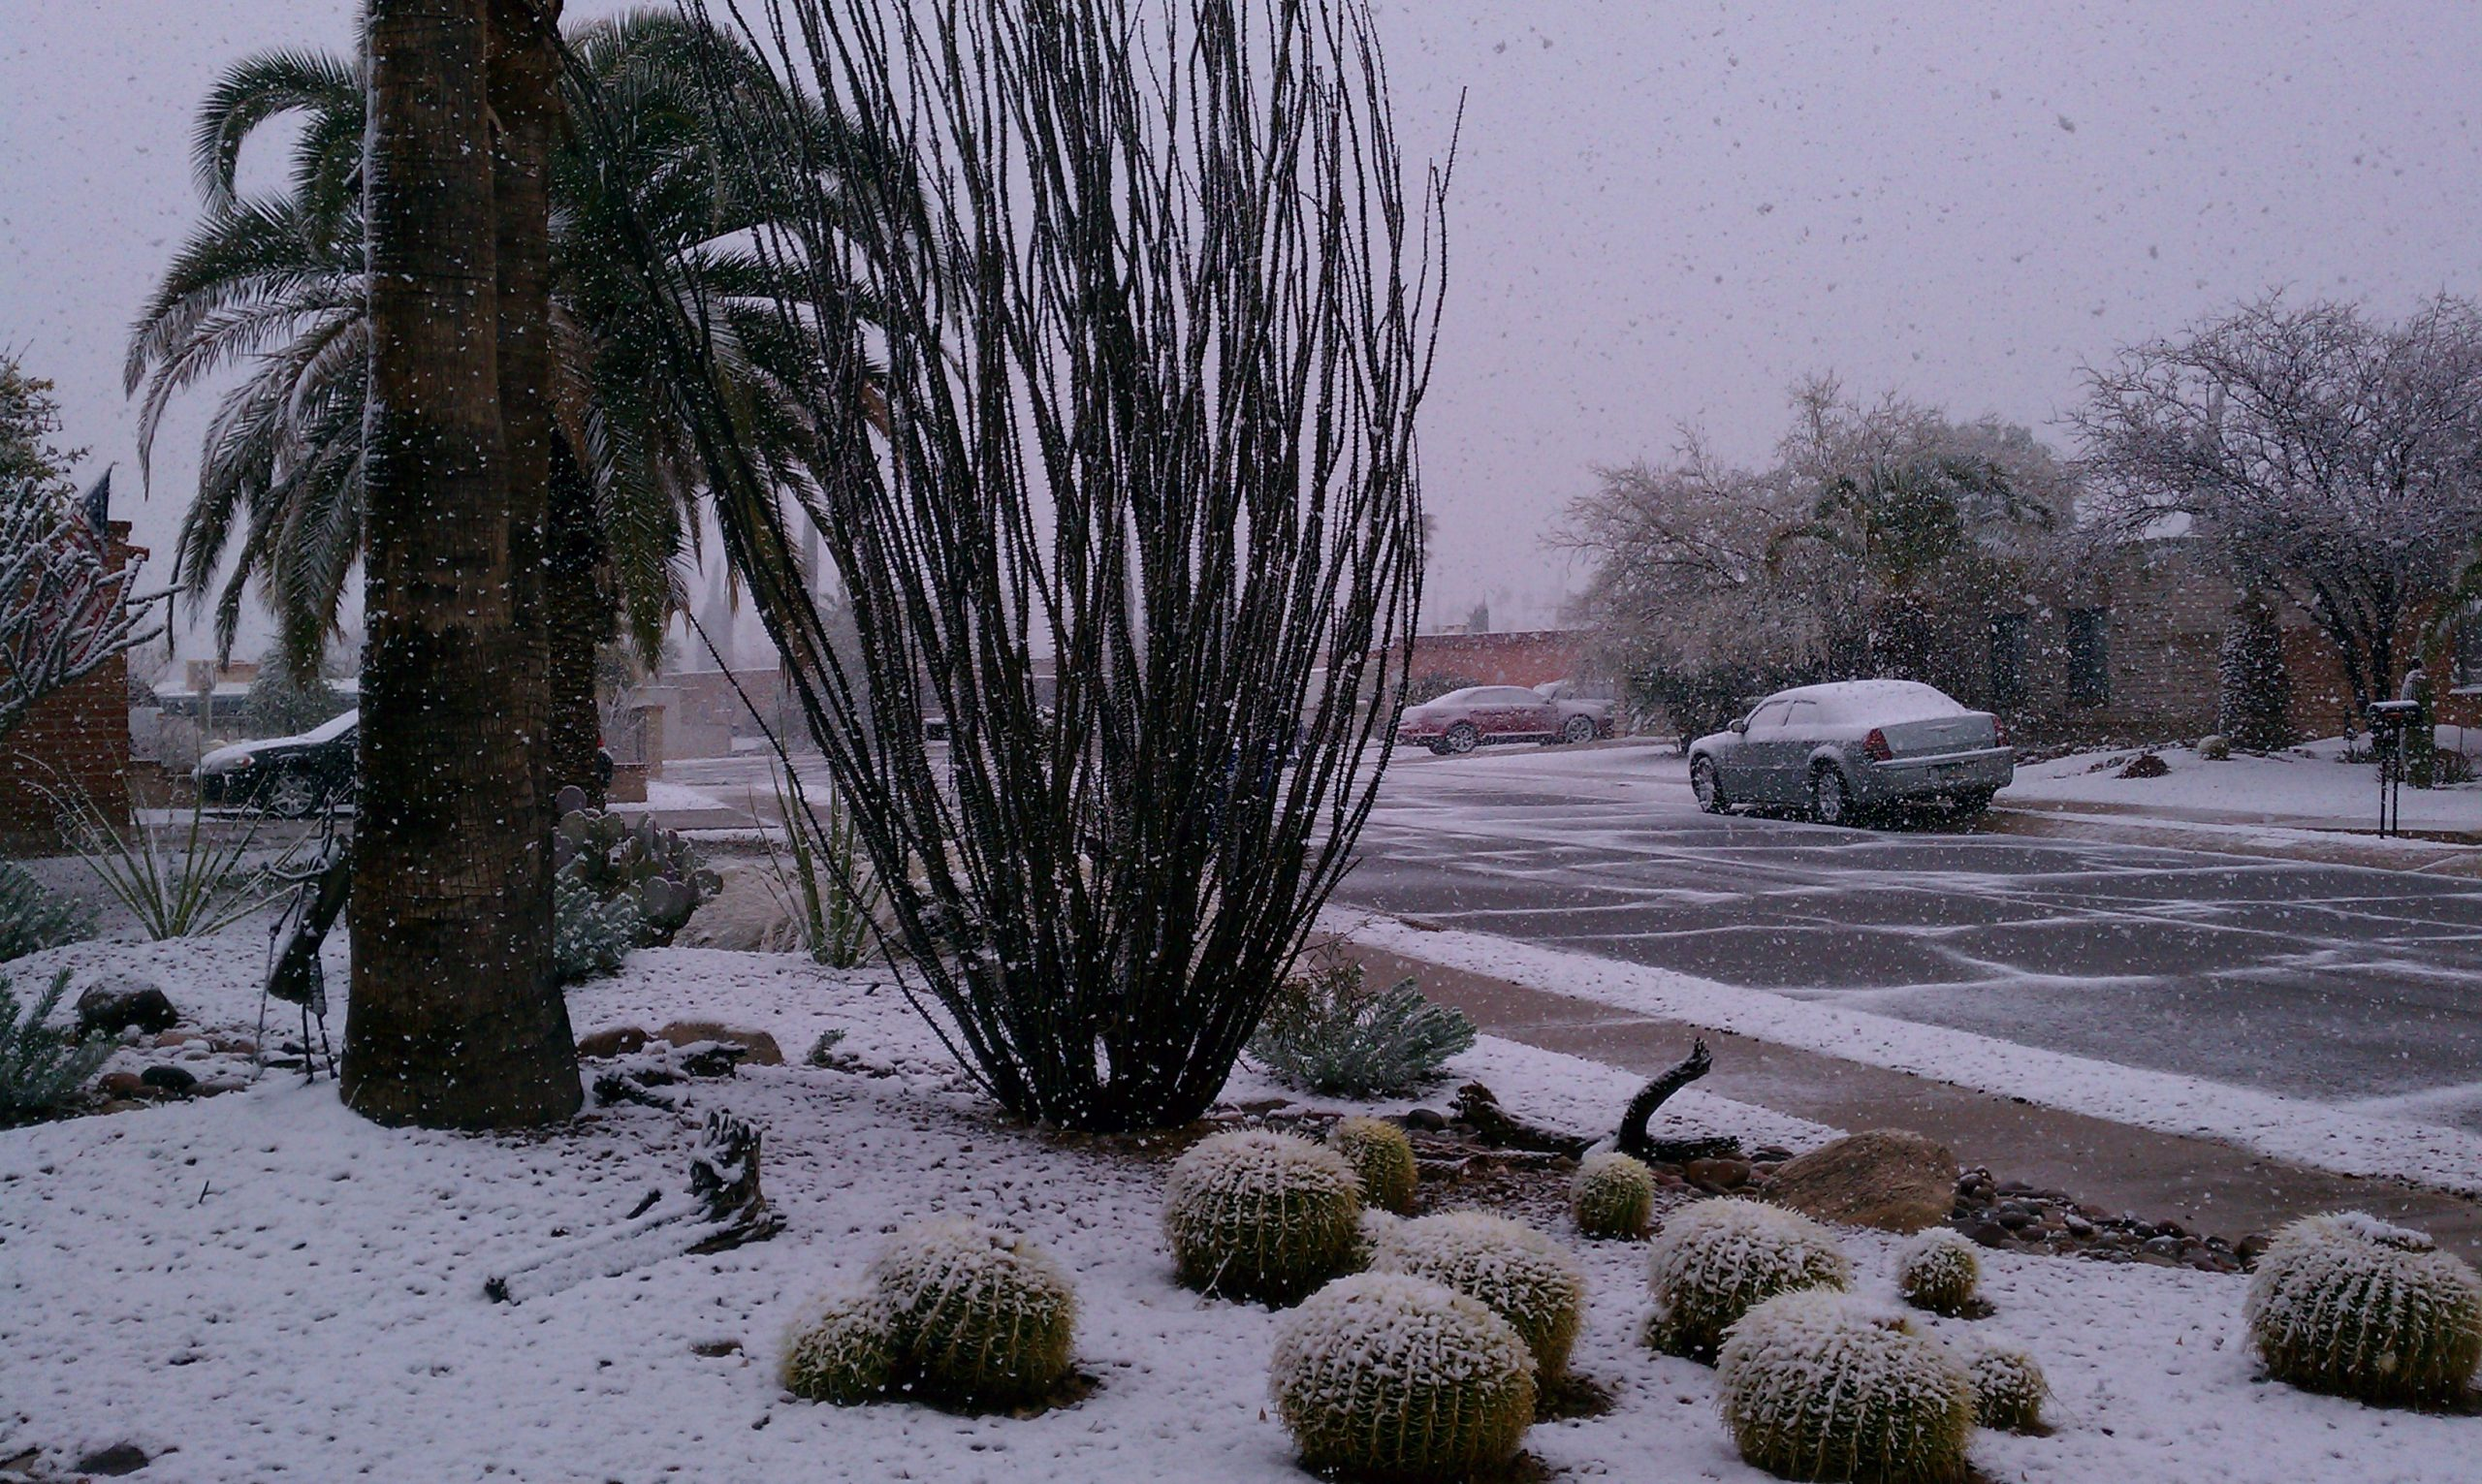 Snow in the desert can be a cause for alarm. Potted Desert